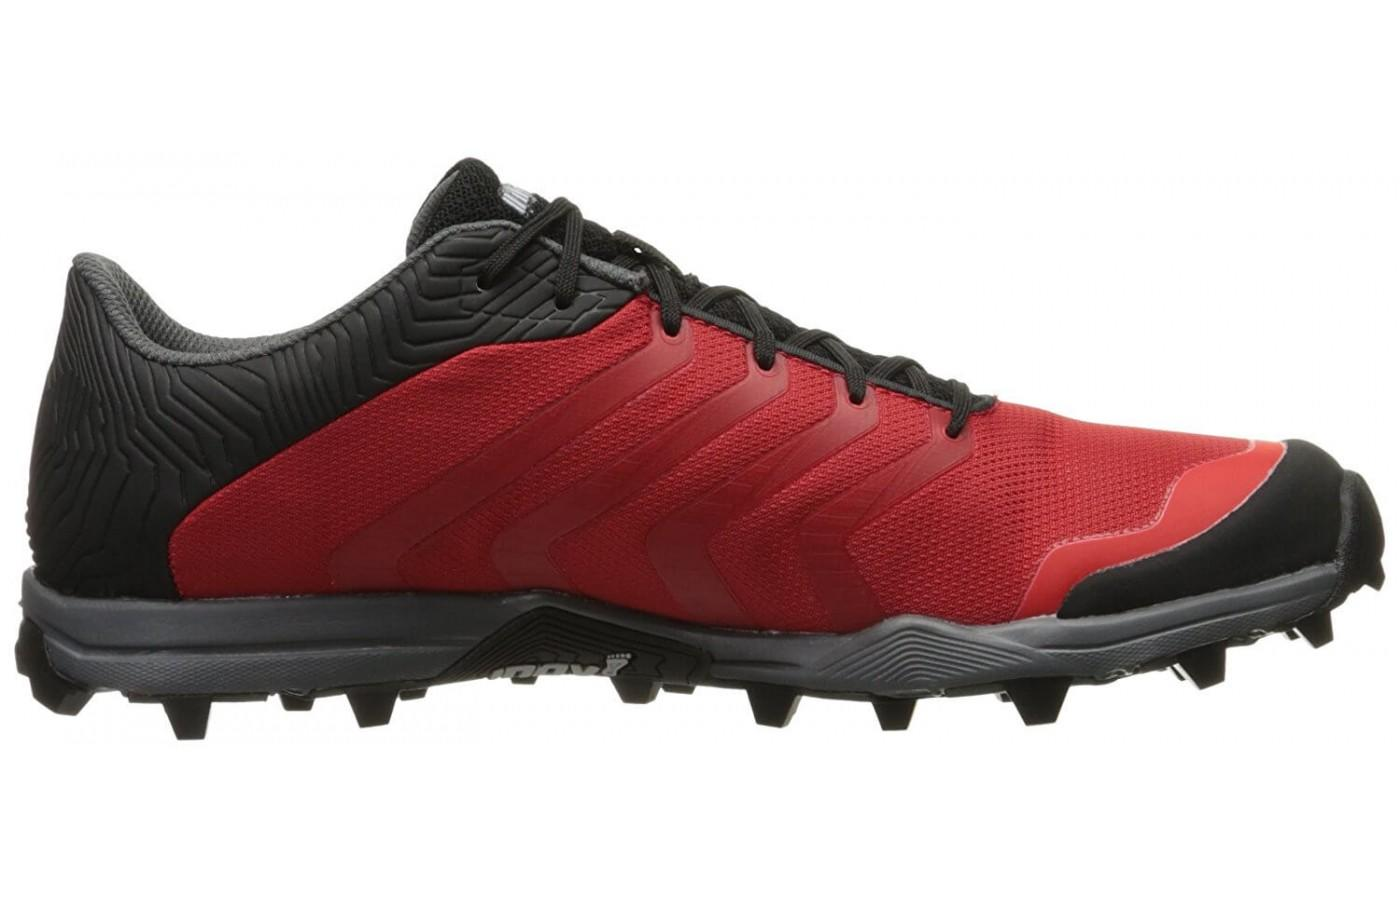 The breathable mesh with water repellent coating help keep the foot cool and dry